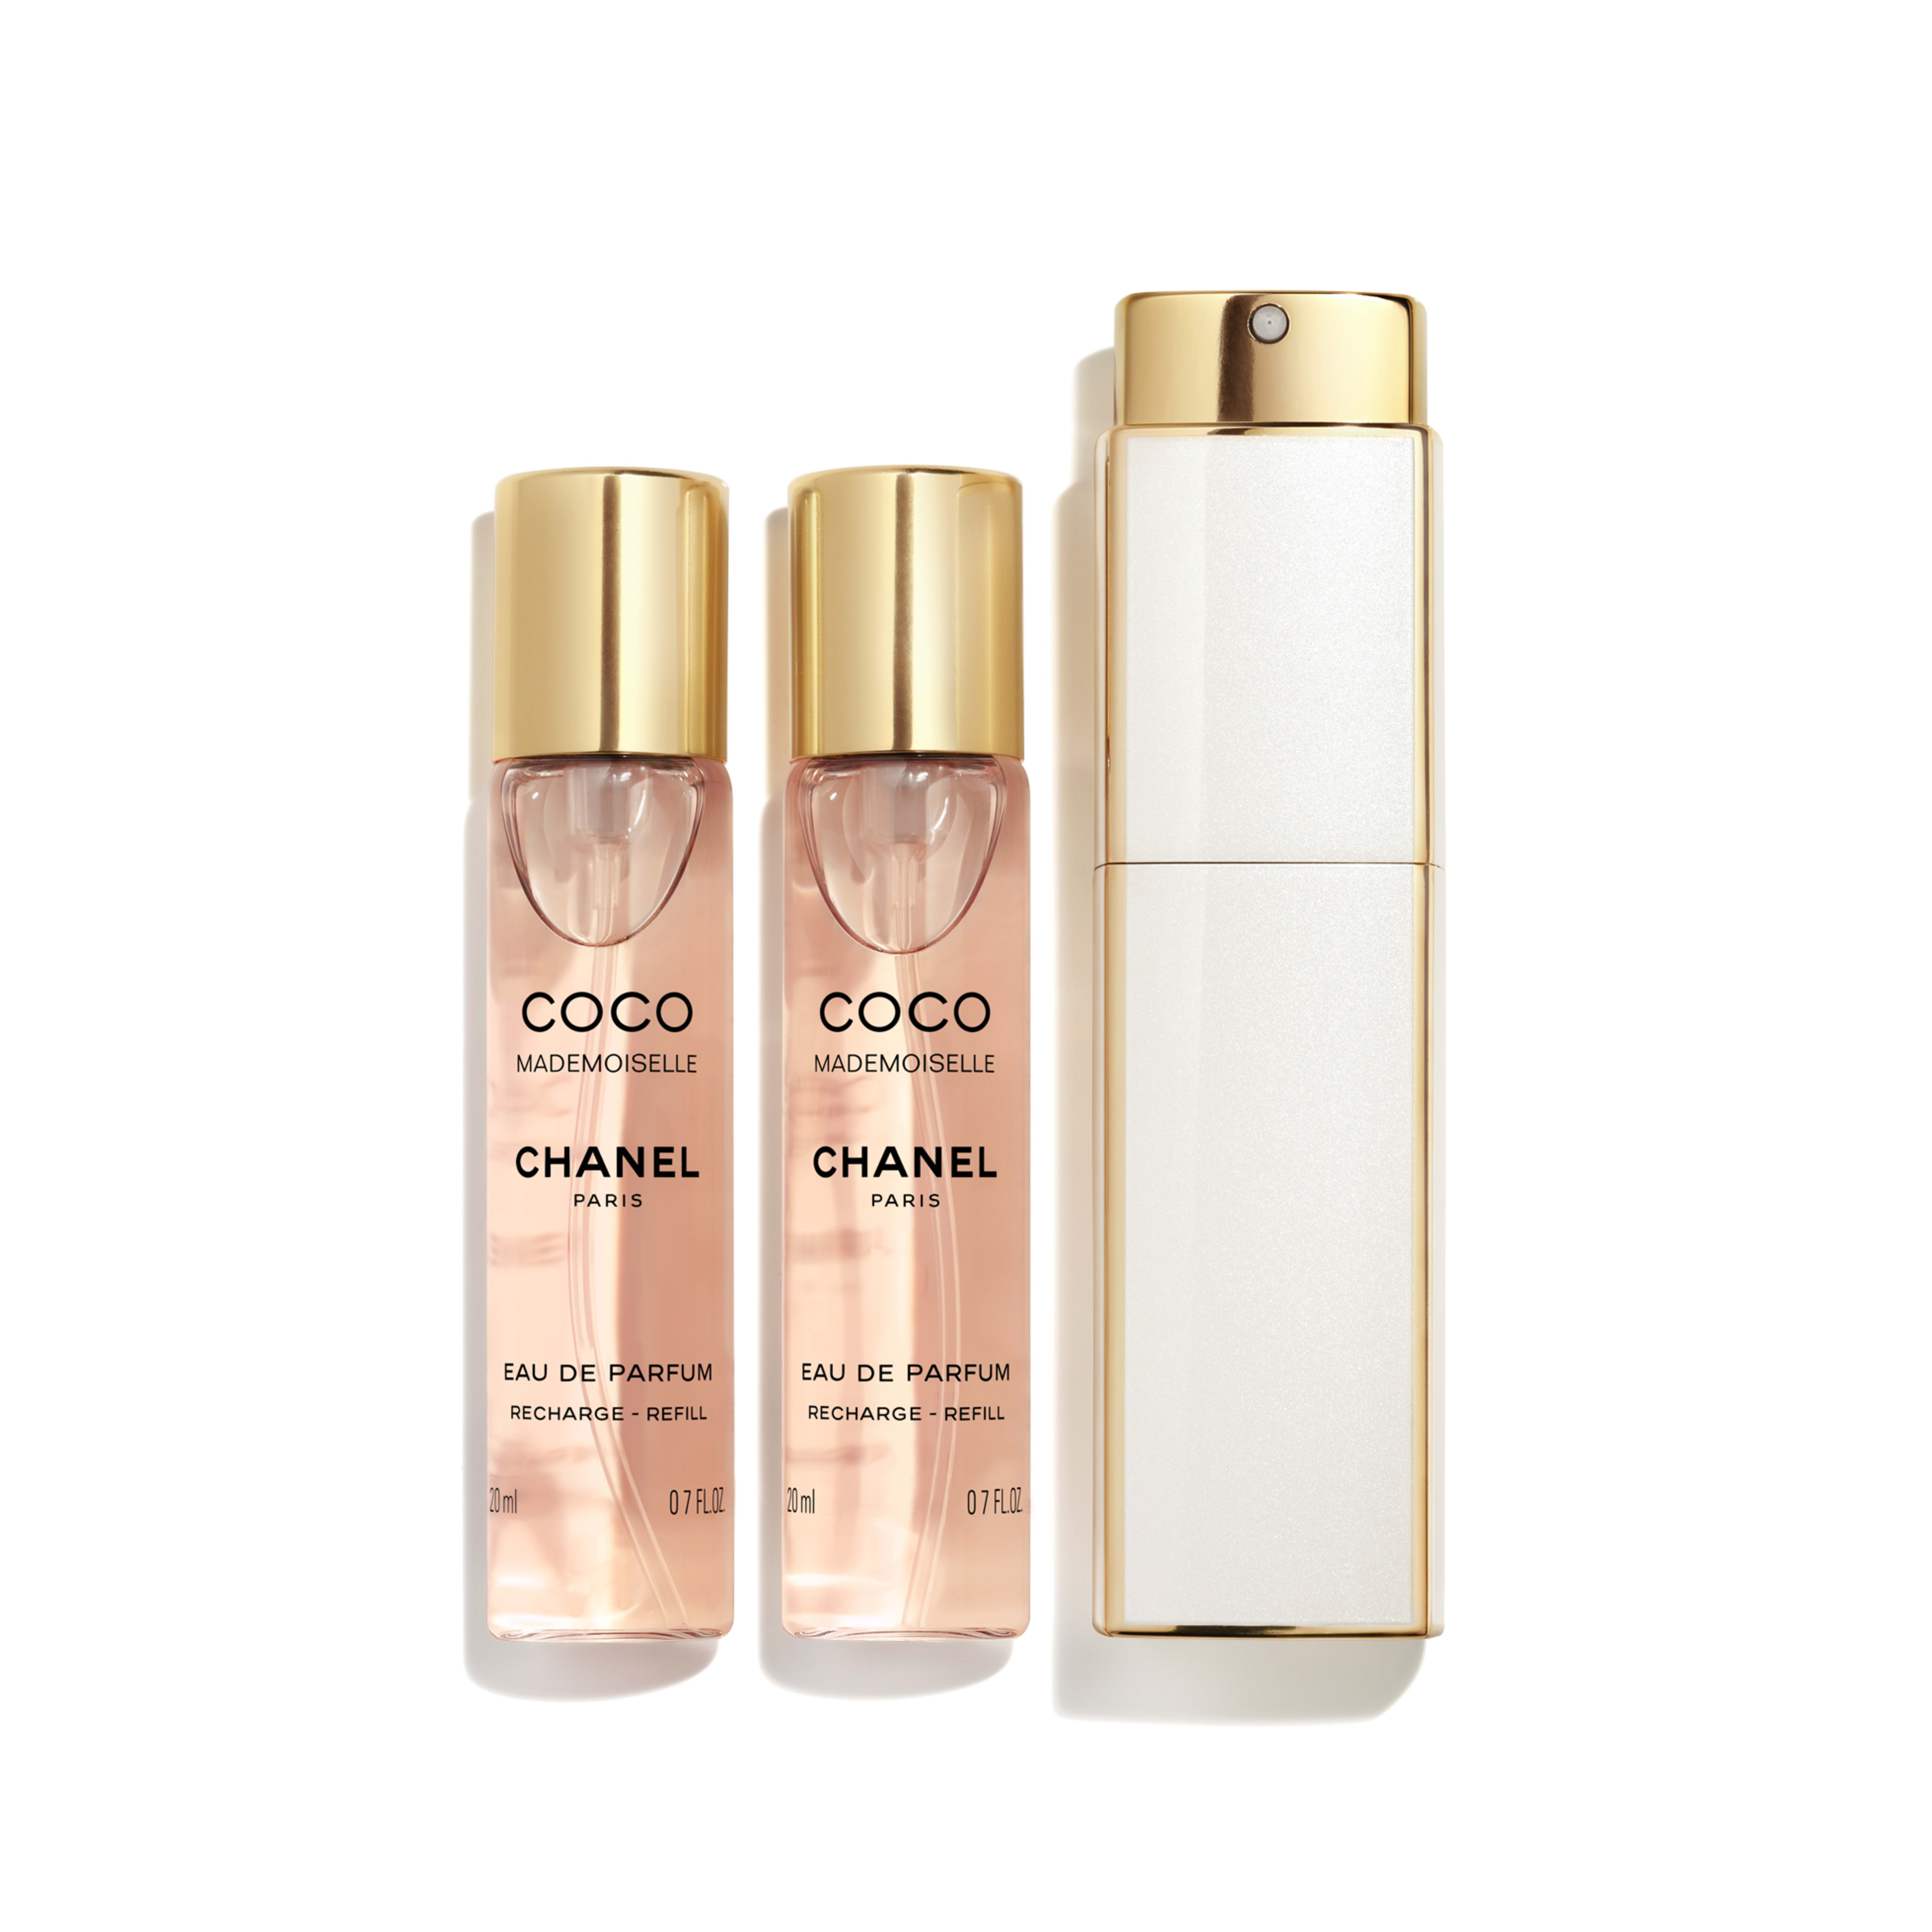 COCO MADEMOISELLE Eau de Parfum Twist And Spray  96b725fe1cfe